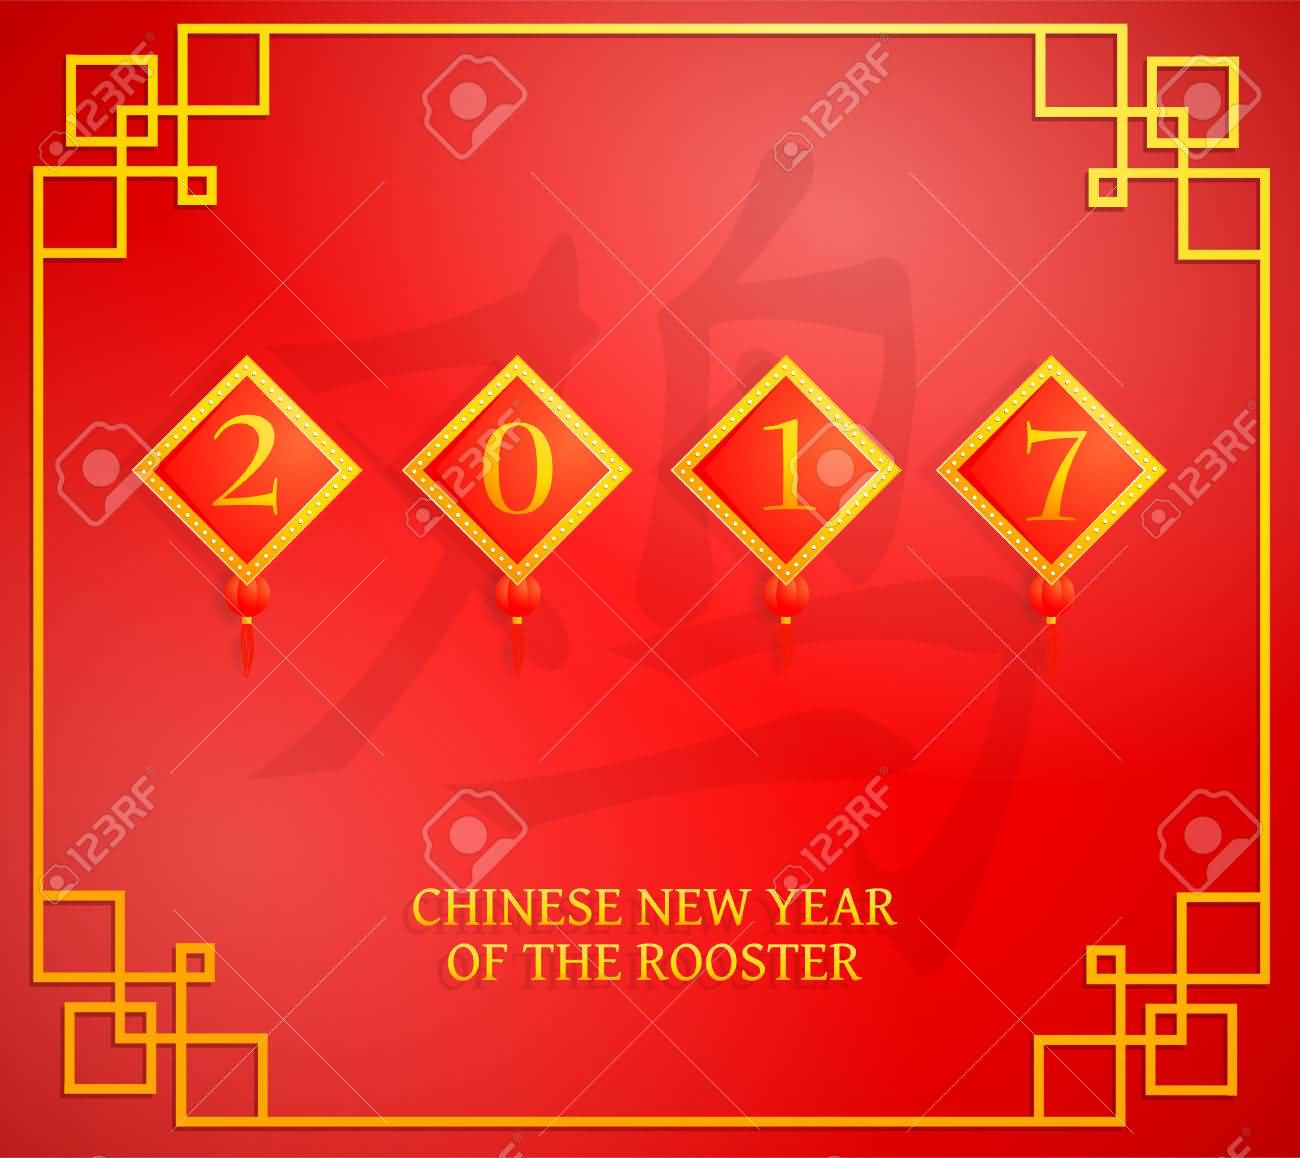 50 happy chinese new year 2017 wish pictures and photos chinese new year of the rooster greeting card kristyandbryce Choice Image